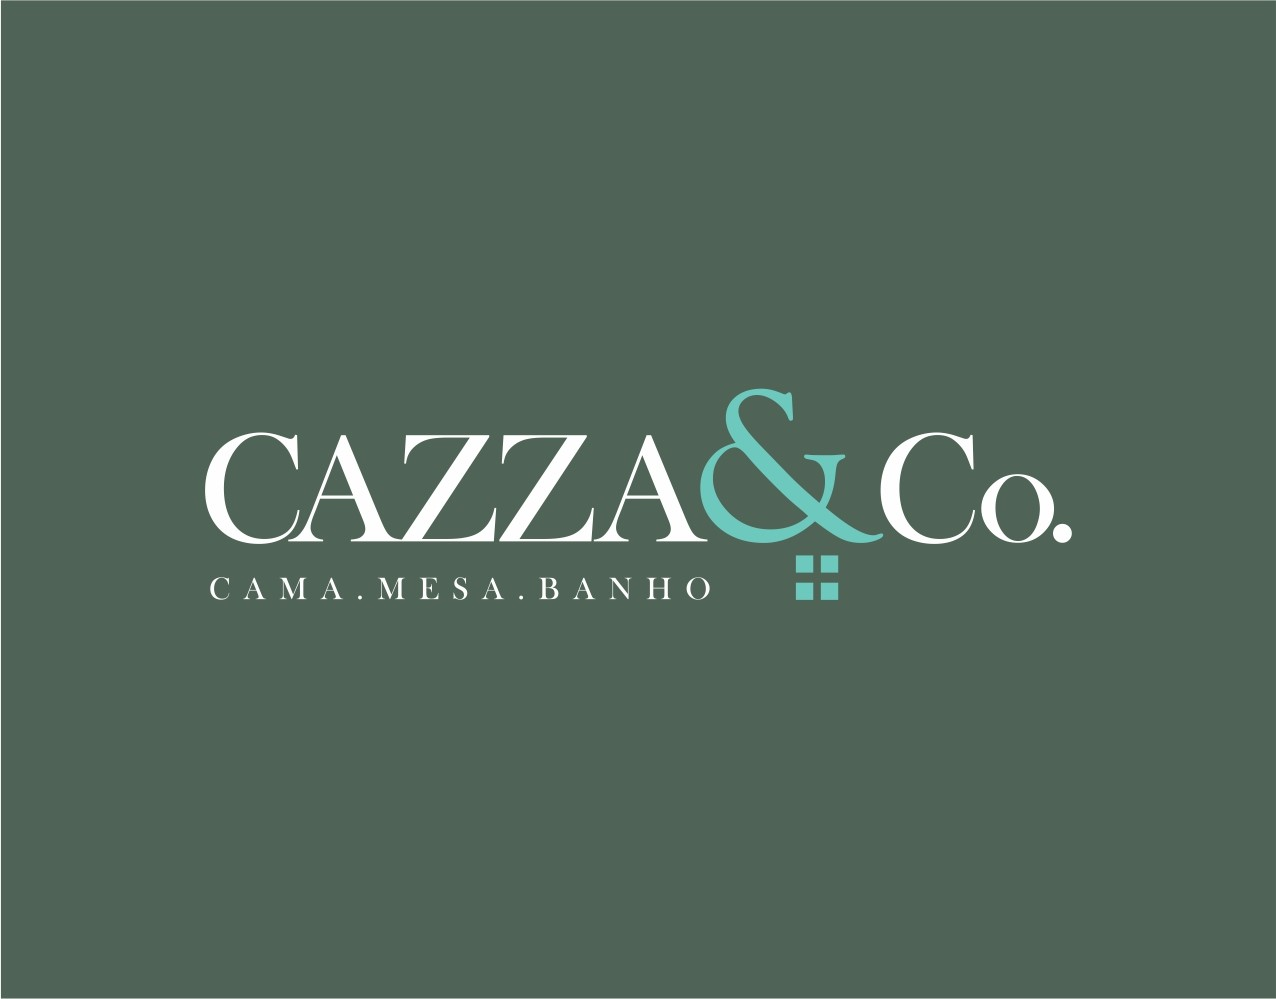 CAZZA & Co